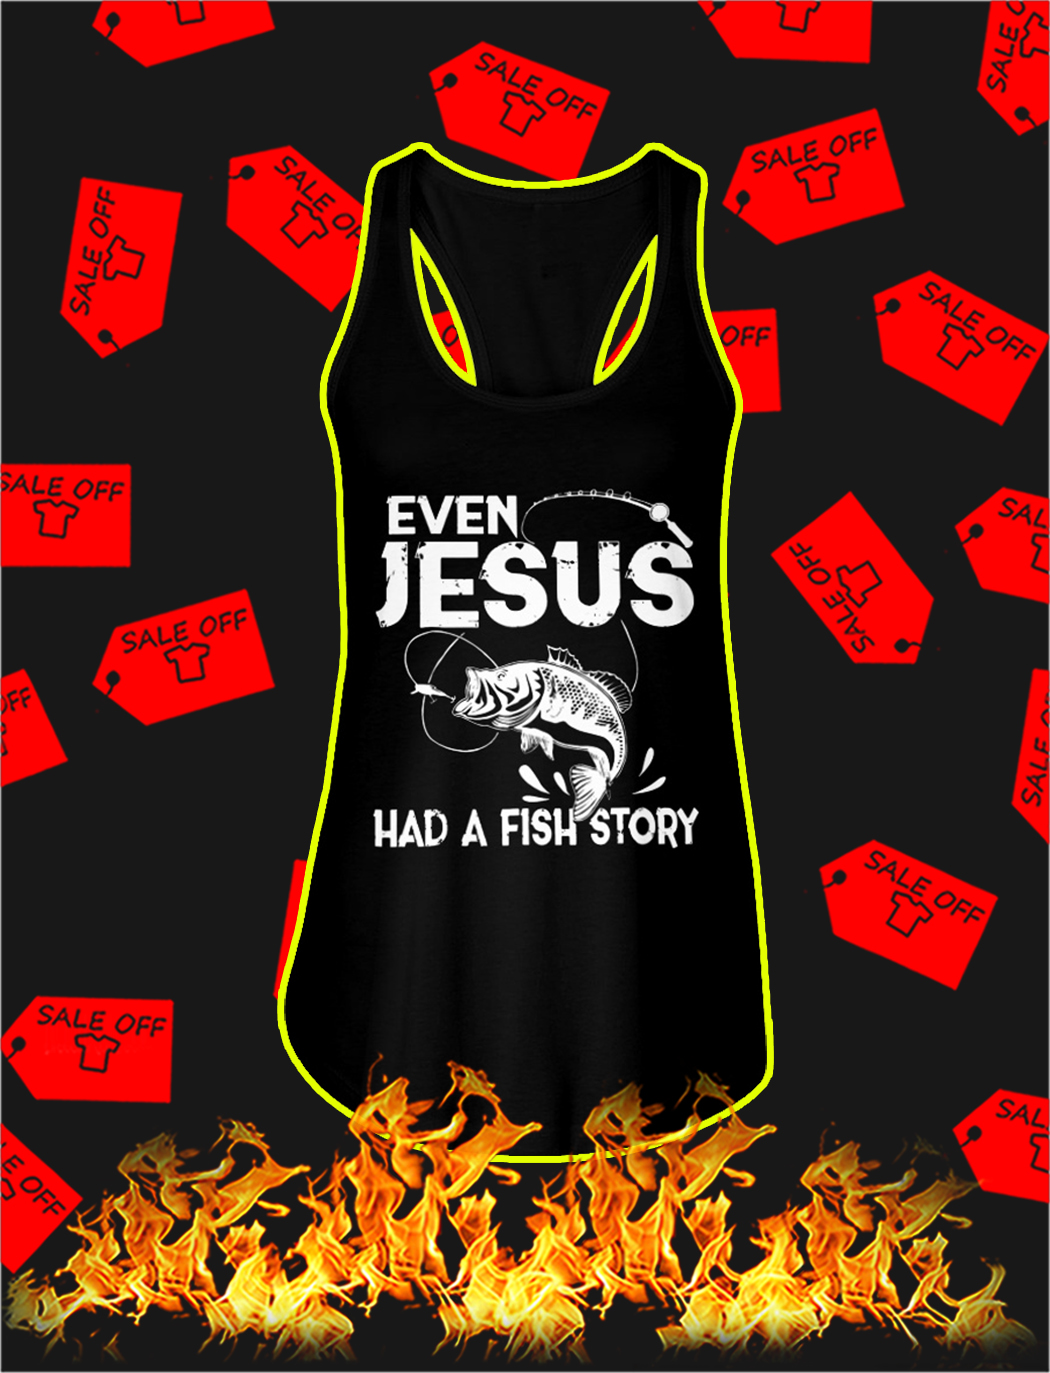 Even jesus had a fish story tank top